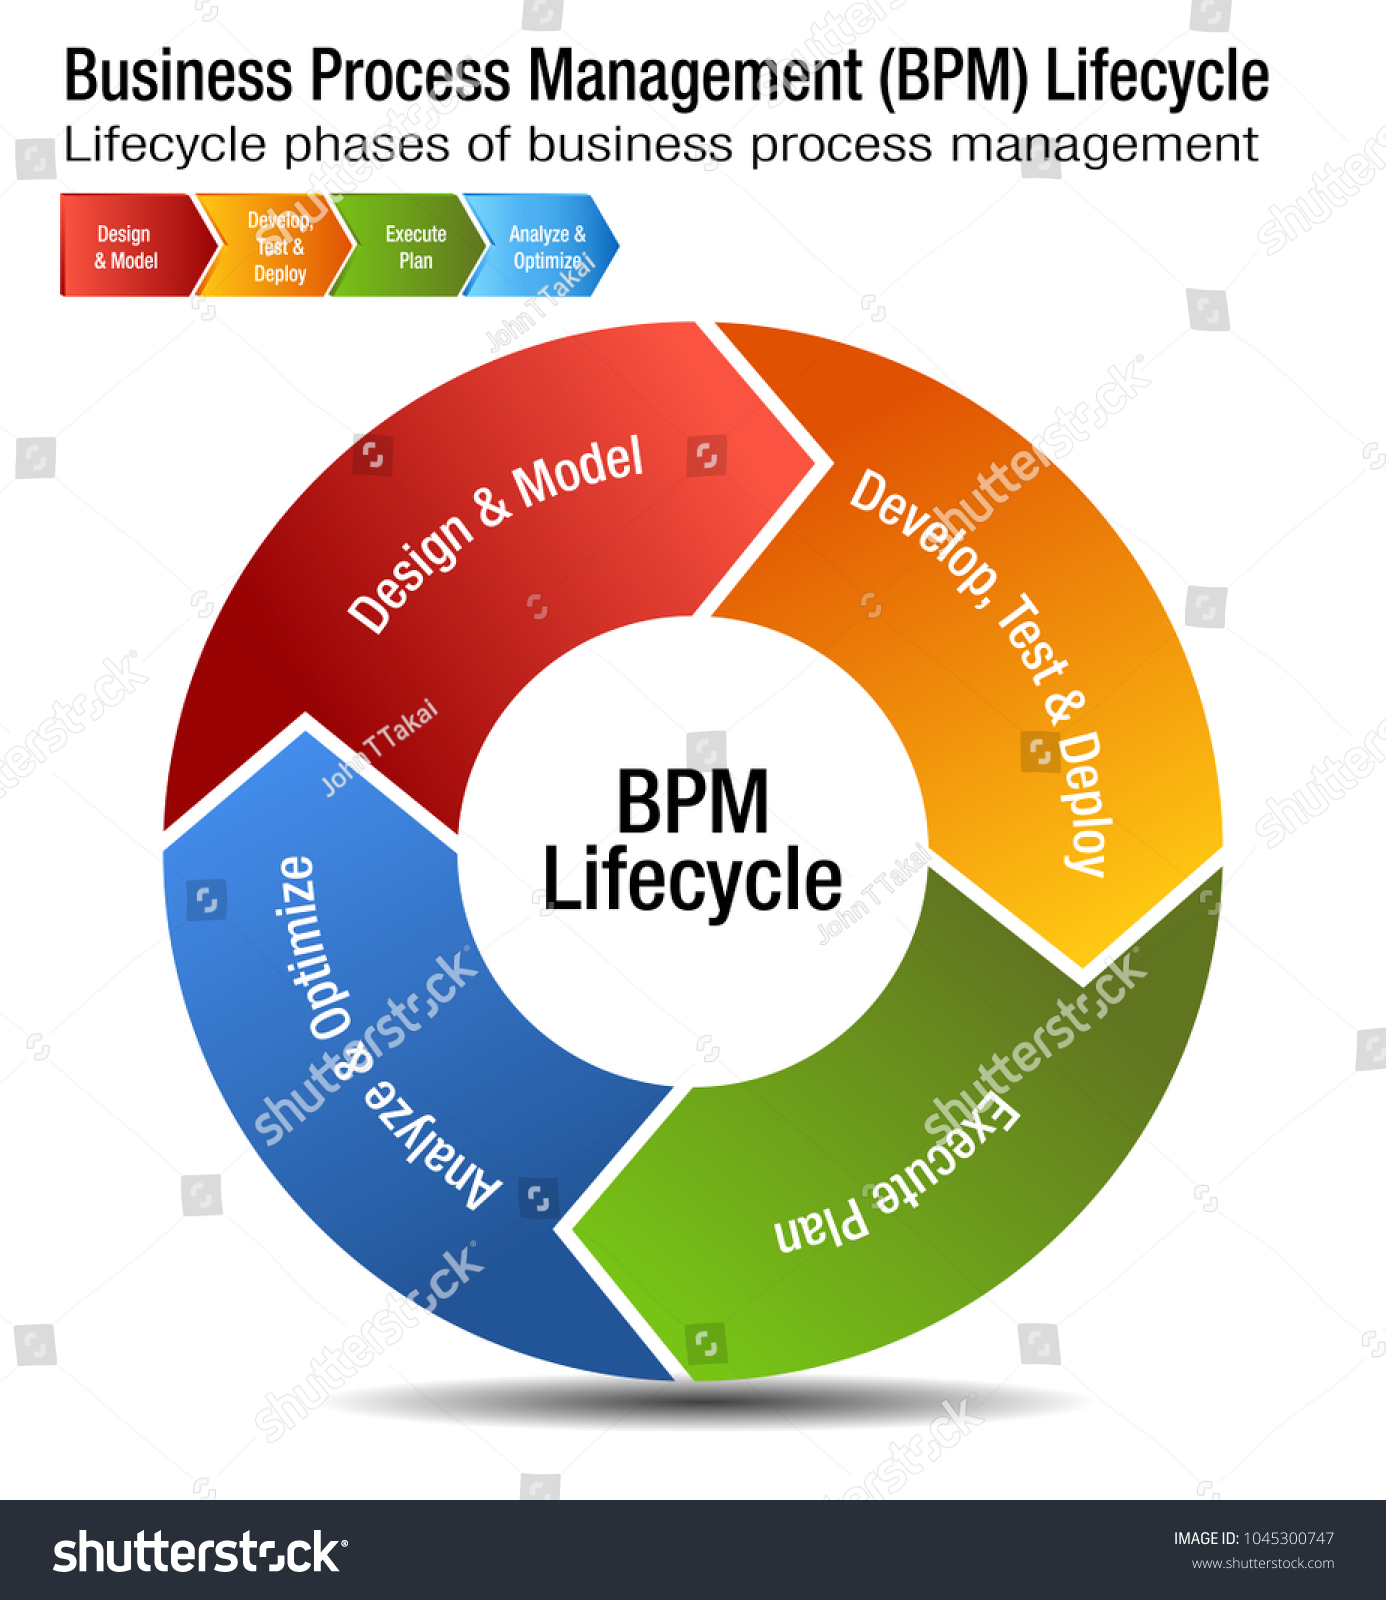 Image business process management lifecycle bpm stock vector an image of a business process management lifecycle bpm chart pooptronica Image collections